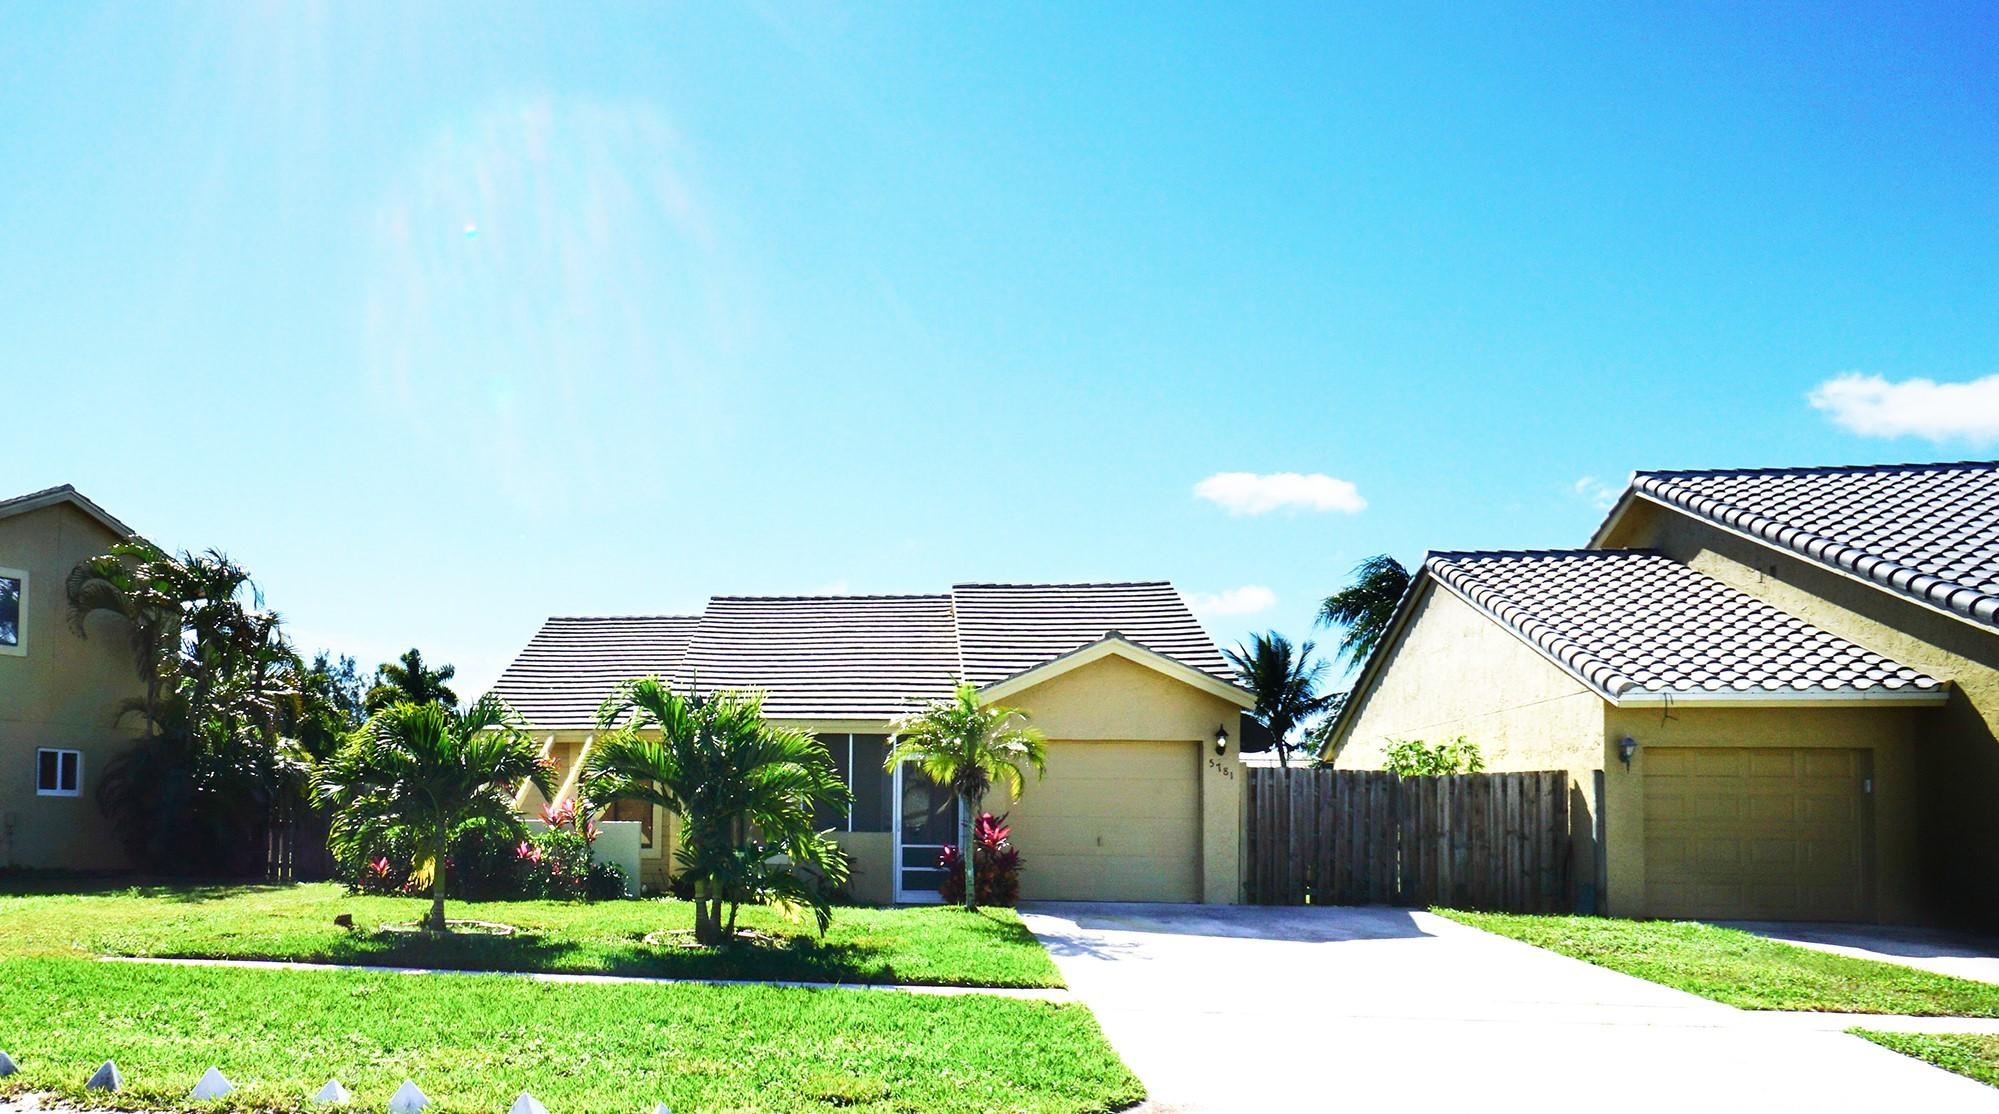 5781 Strawberry Lakes Circle, Lake Worth, Florida 33463, 3 Bedrooms Bedrooms, ,2 BathroomsBathrooms,Single Family,For Sale,Strawberry Lakes,RX-10499881